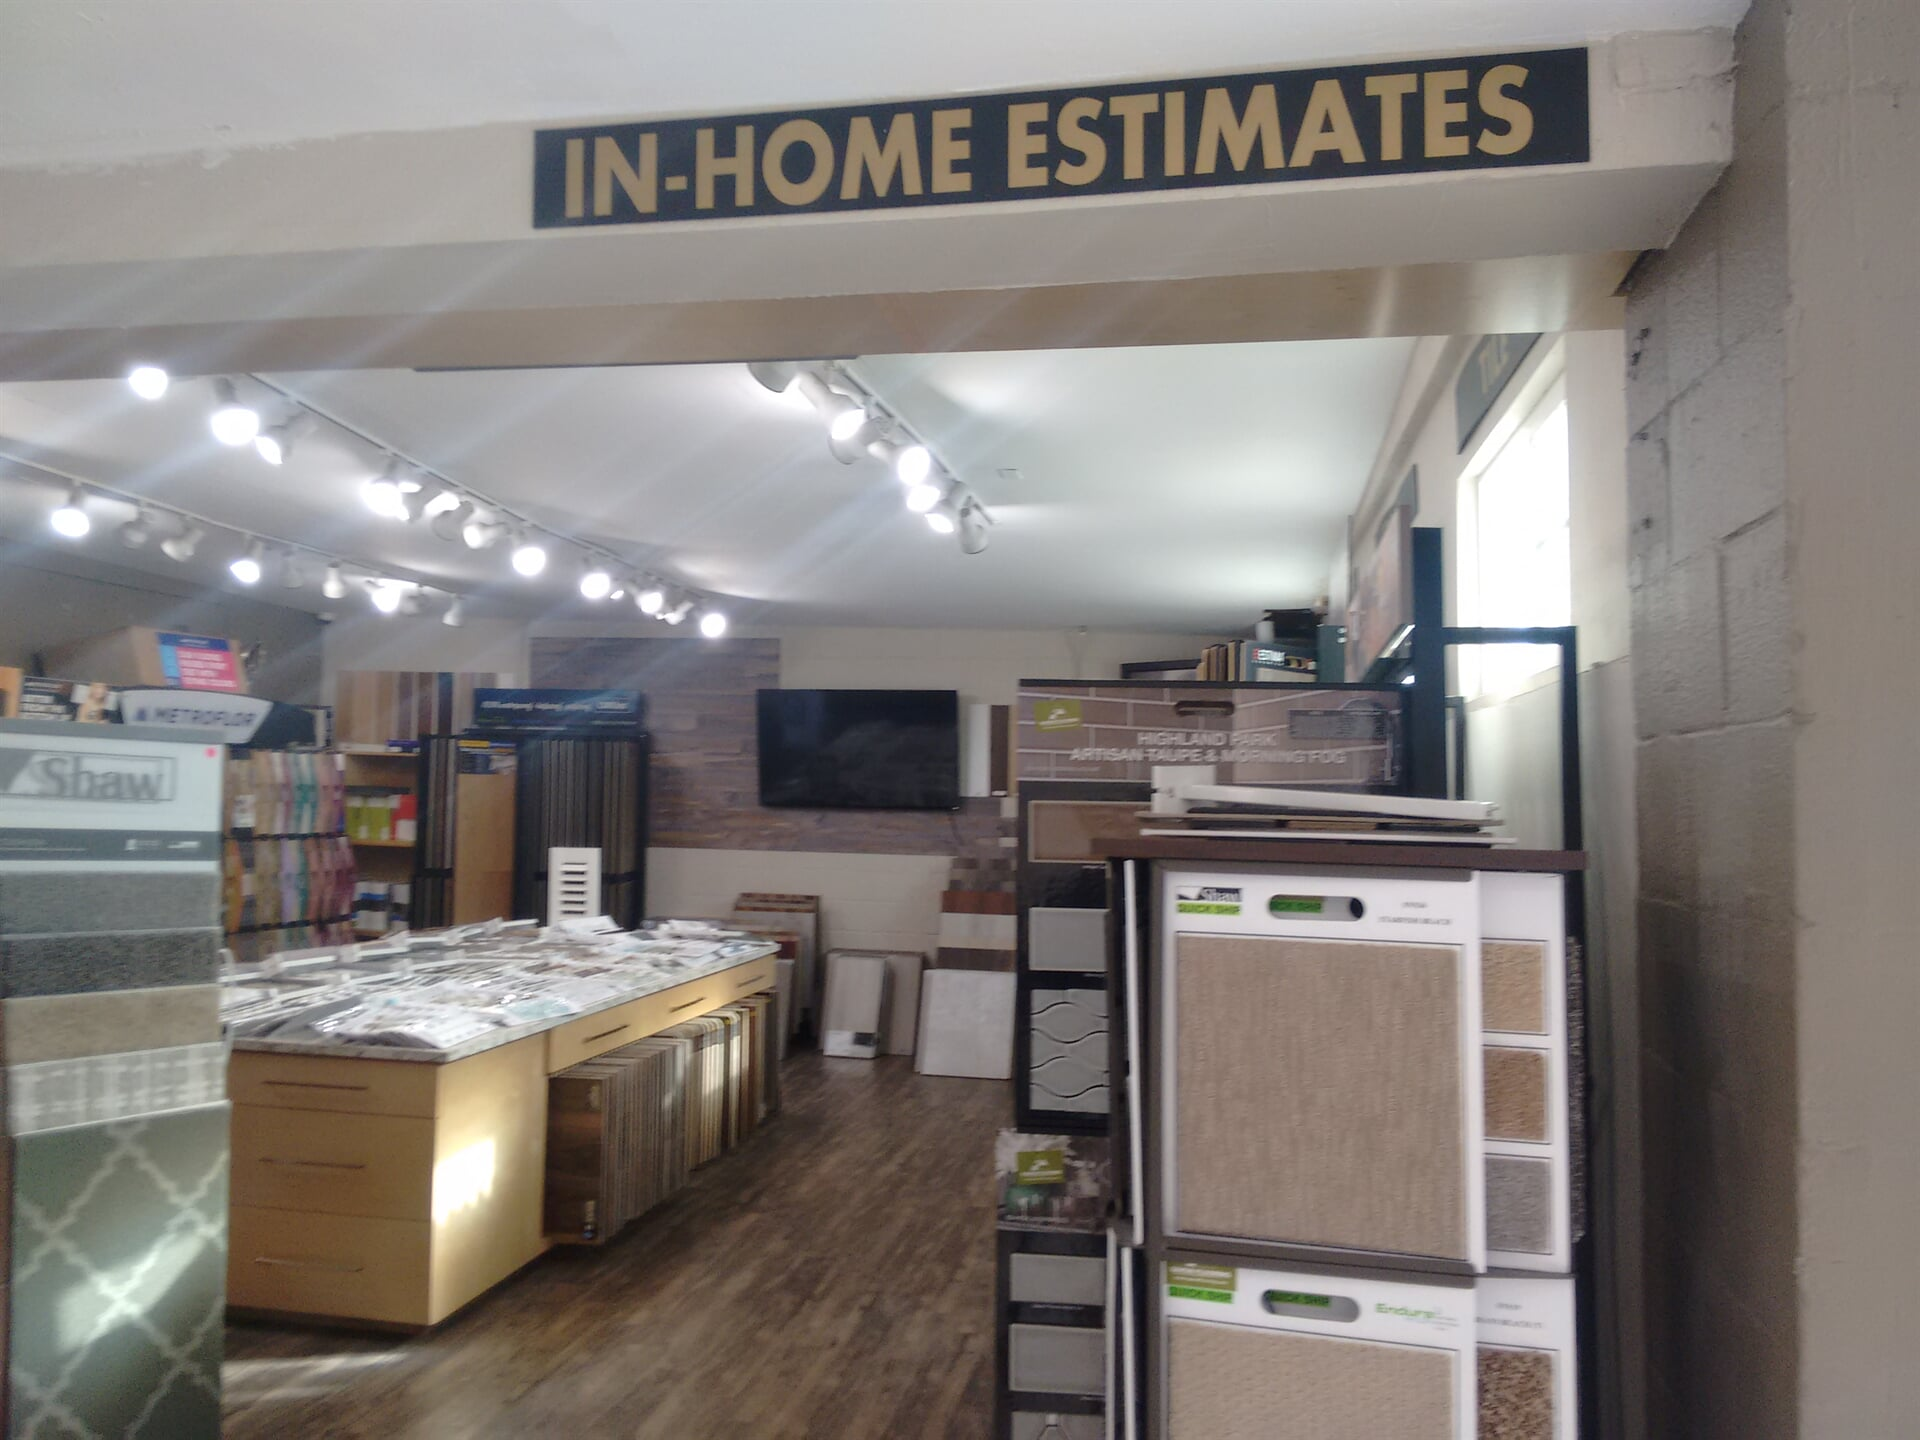 We offer in-home estimates from our professional team